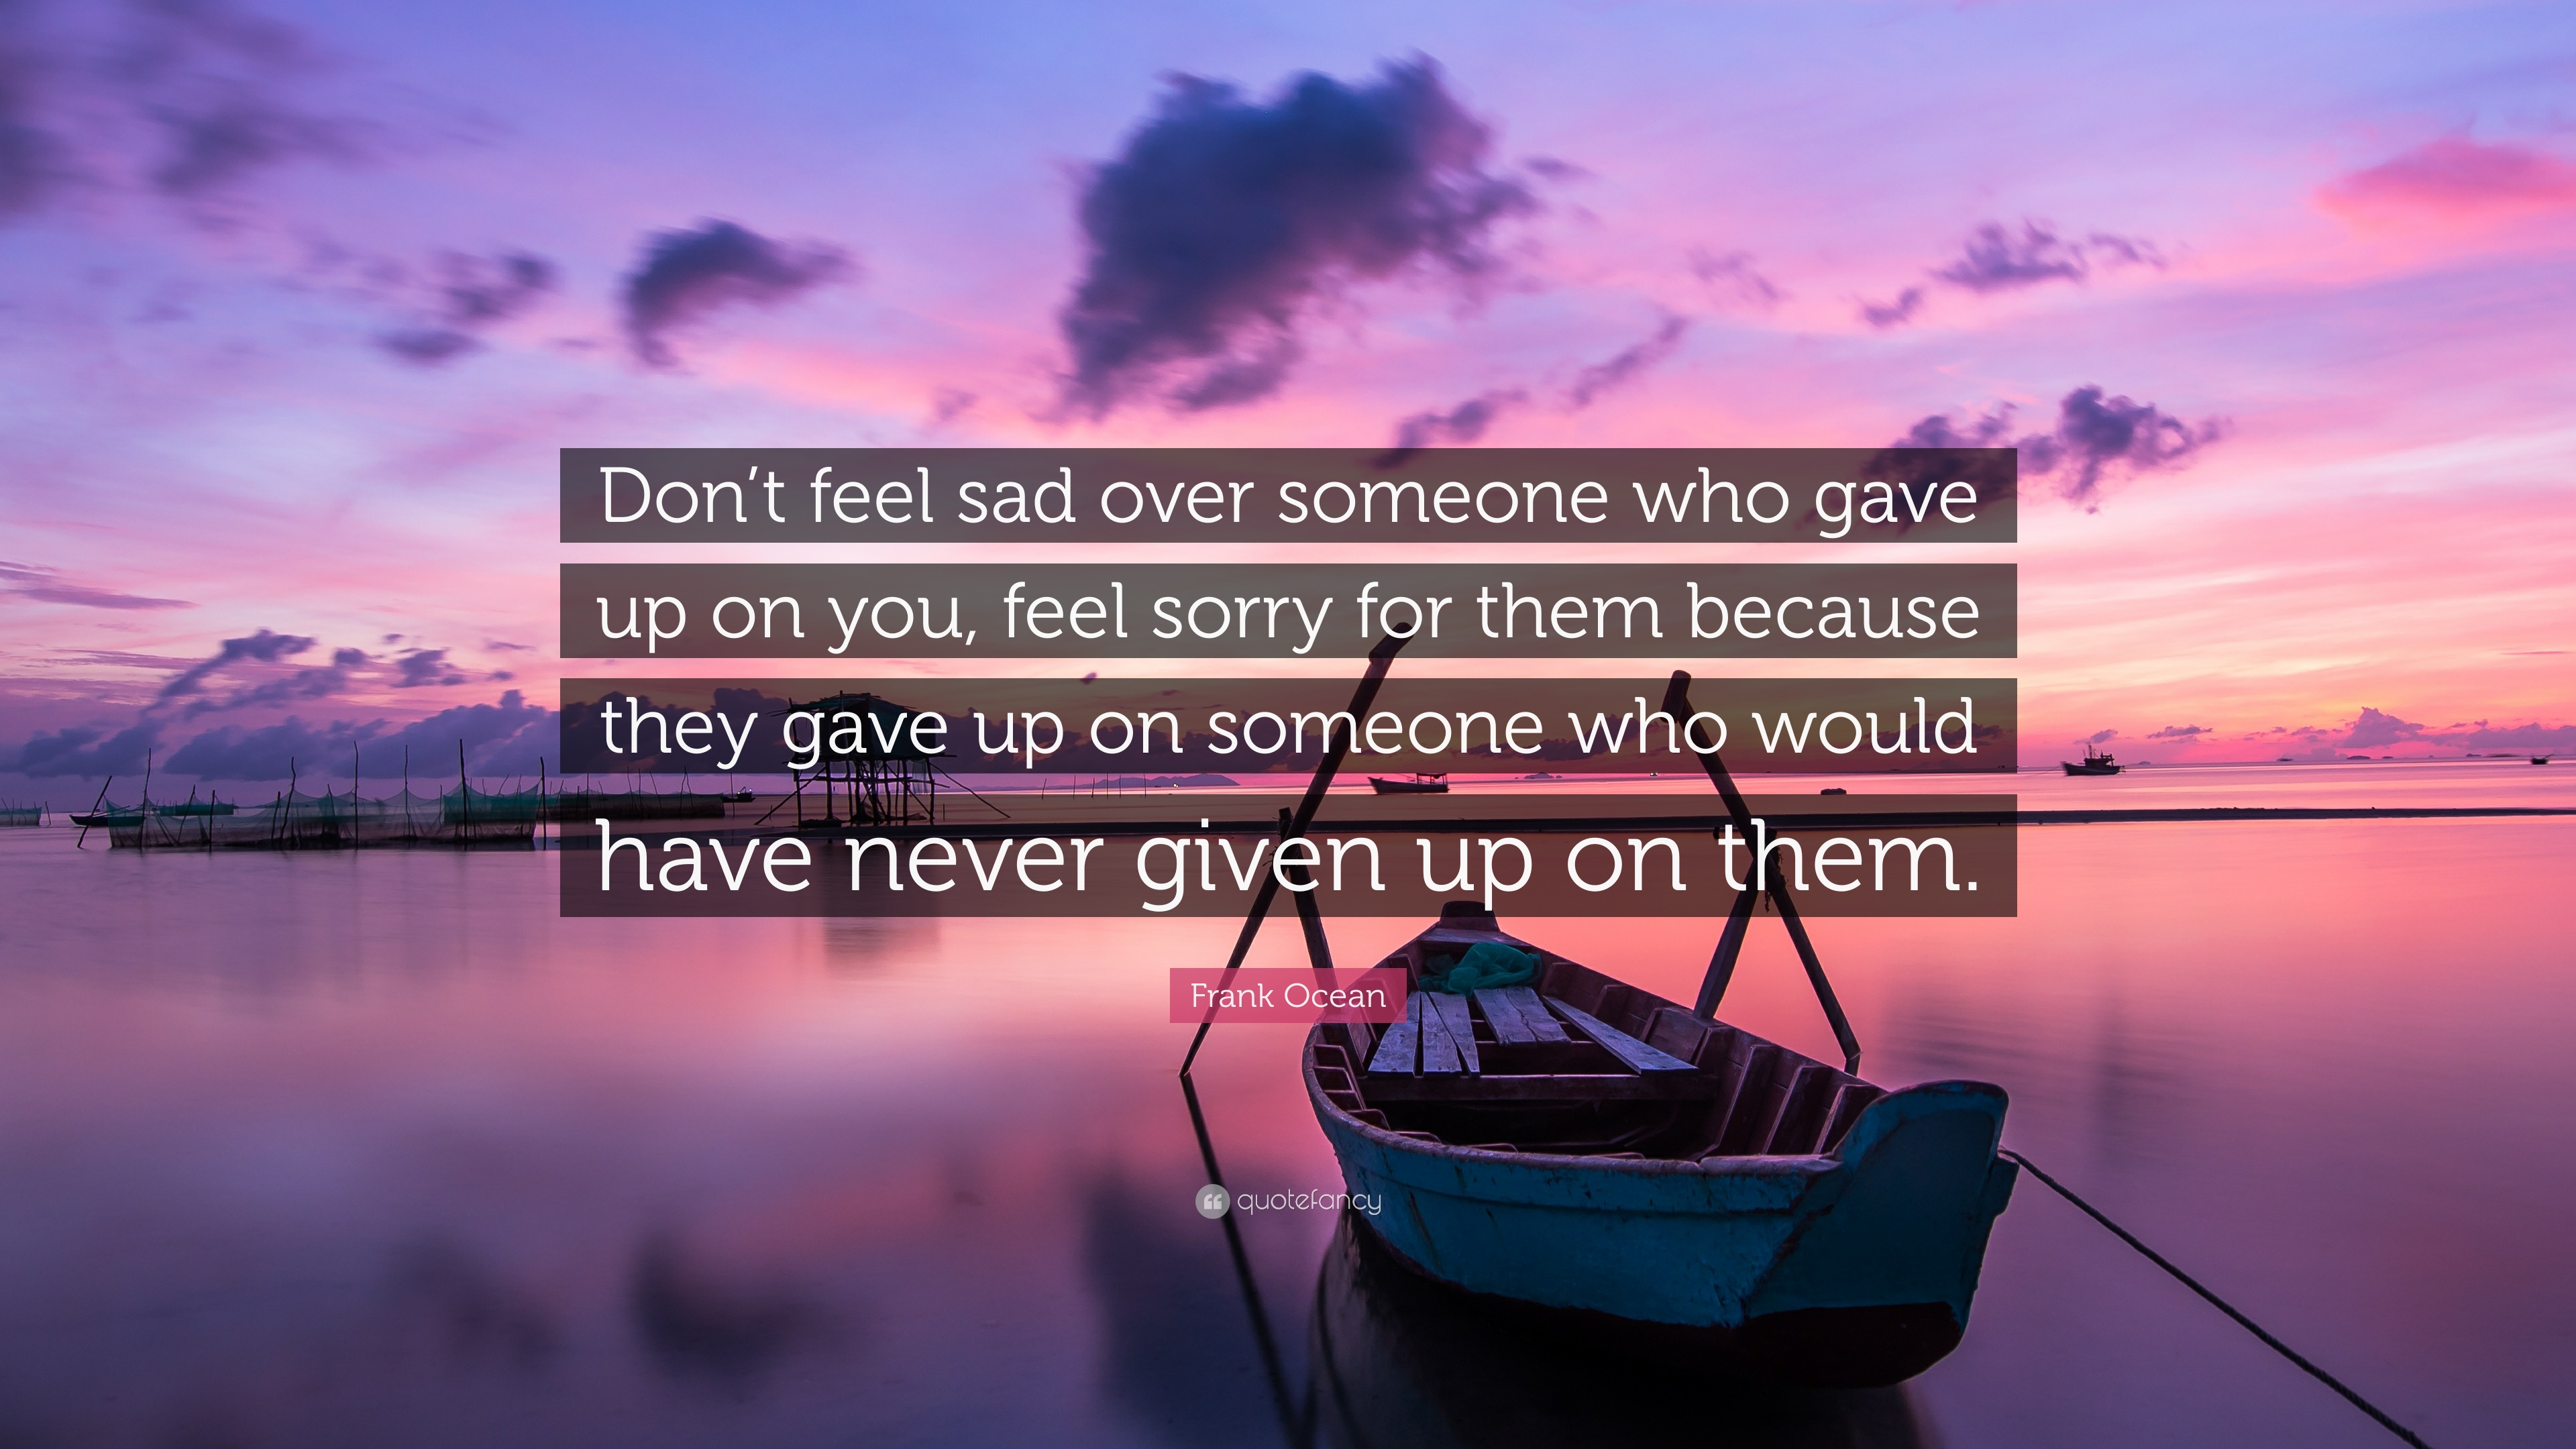 Frank Ocean Quote Dont Feel Sad Over Someone Who Gave Up On You